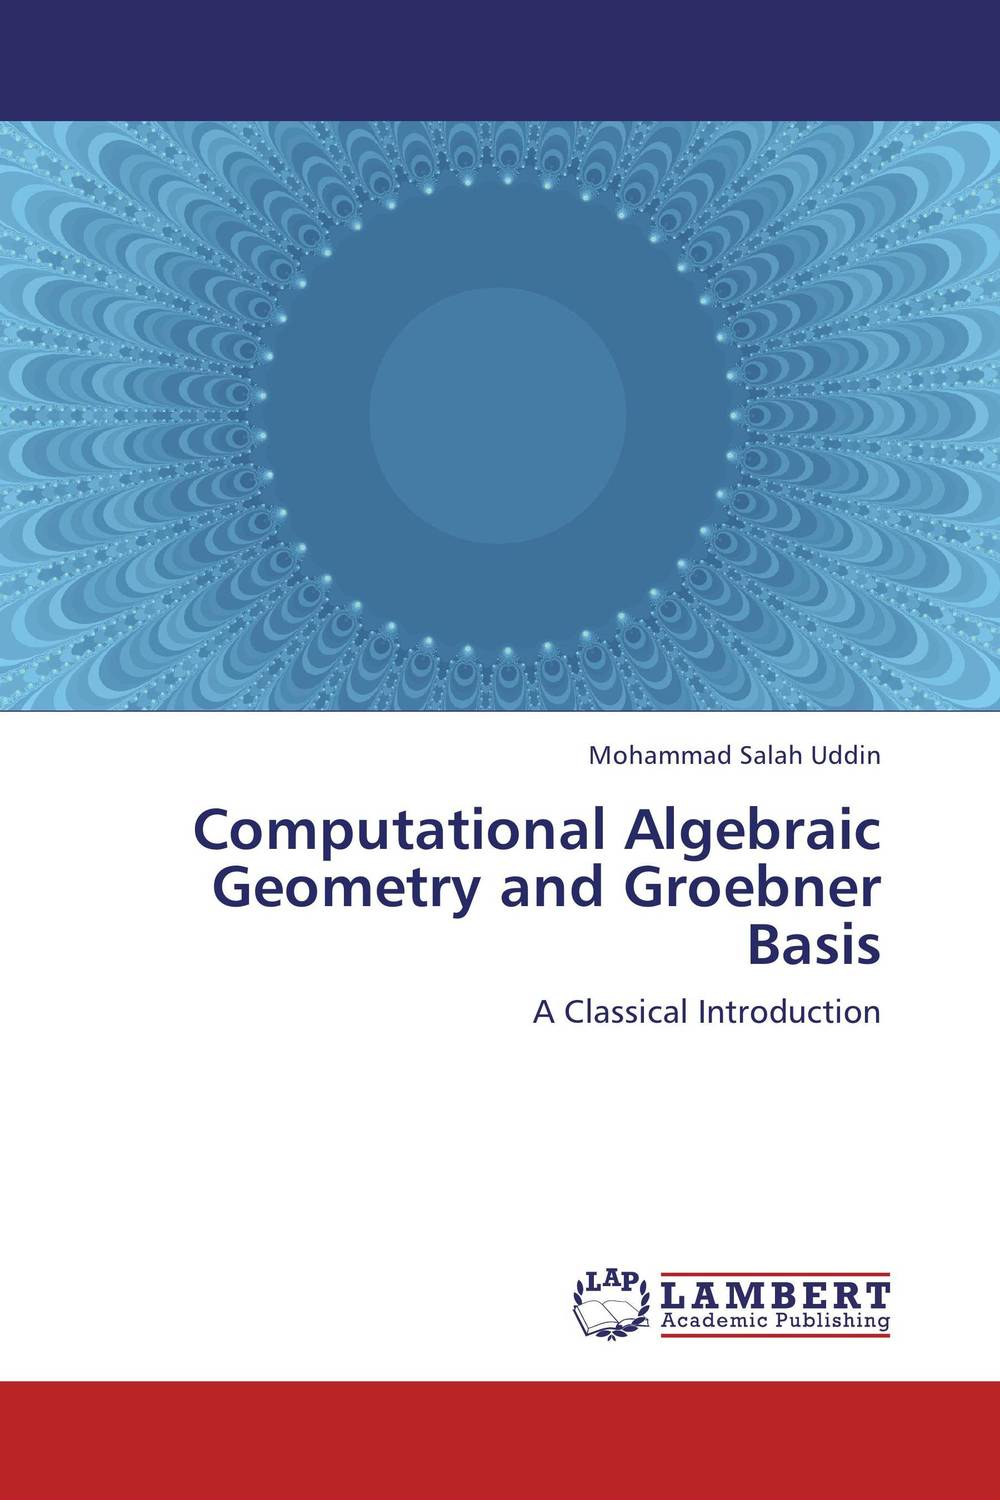 Computational Algebraic Geometry and Groebner Basis development of a computational interface for small hydropower plant